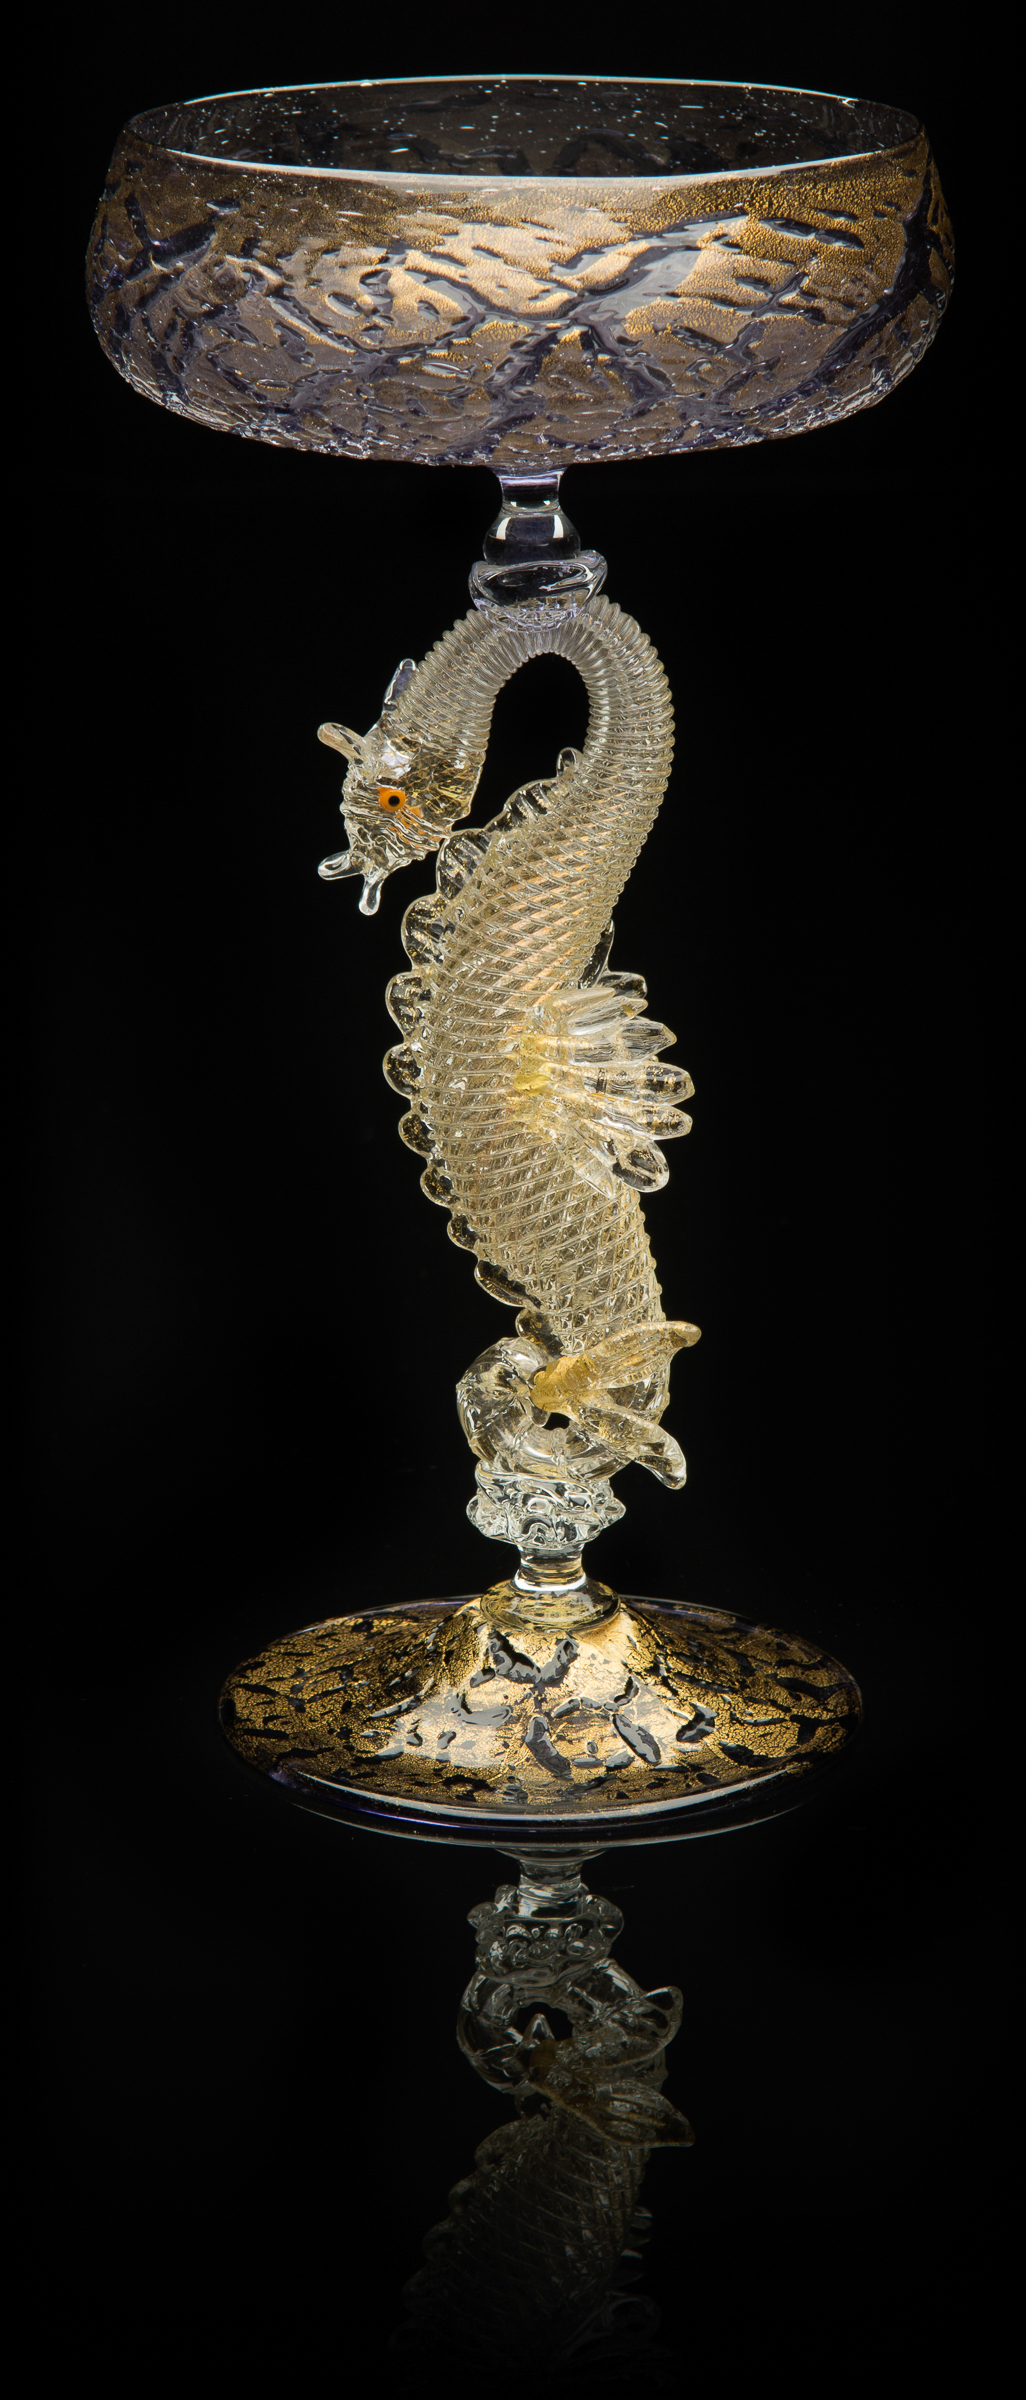 Lino Tagliapietra,  Dragon-stem   Goblet  (1991-1994, glass and gold leaf, 8 3/4 x 4 9/16 x 4 9/16 inches), LT.30